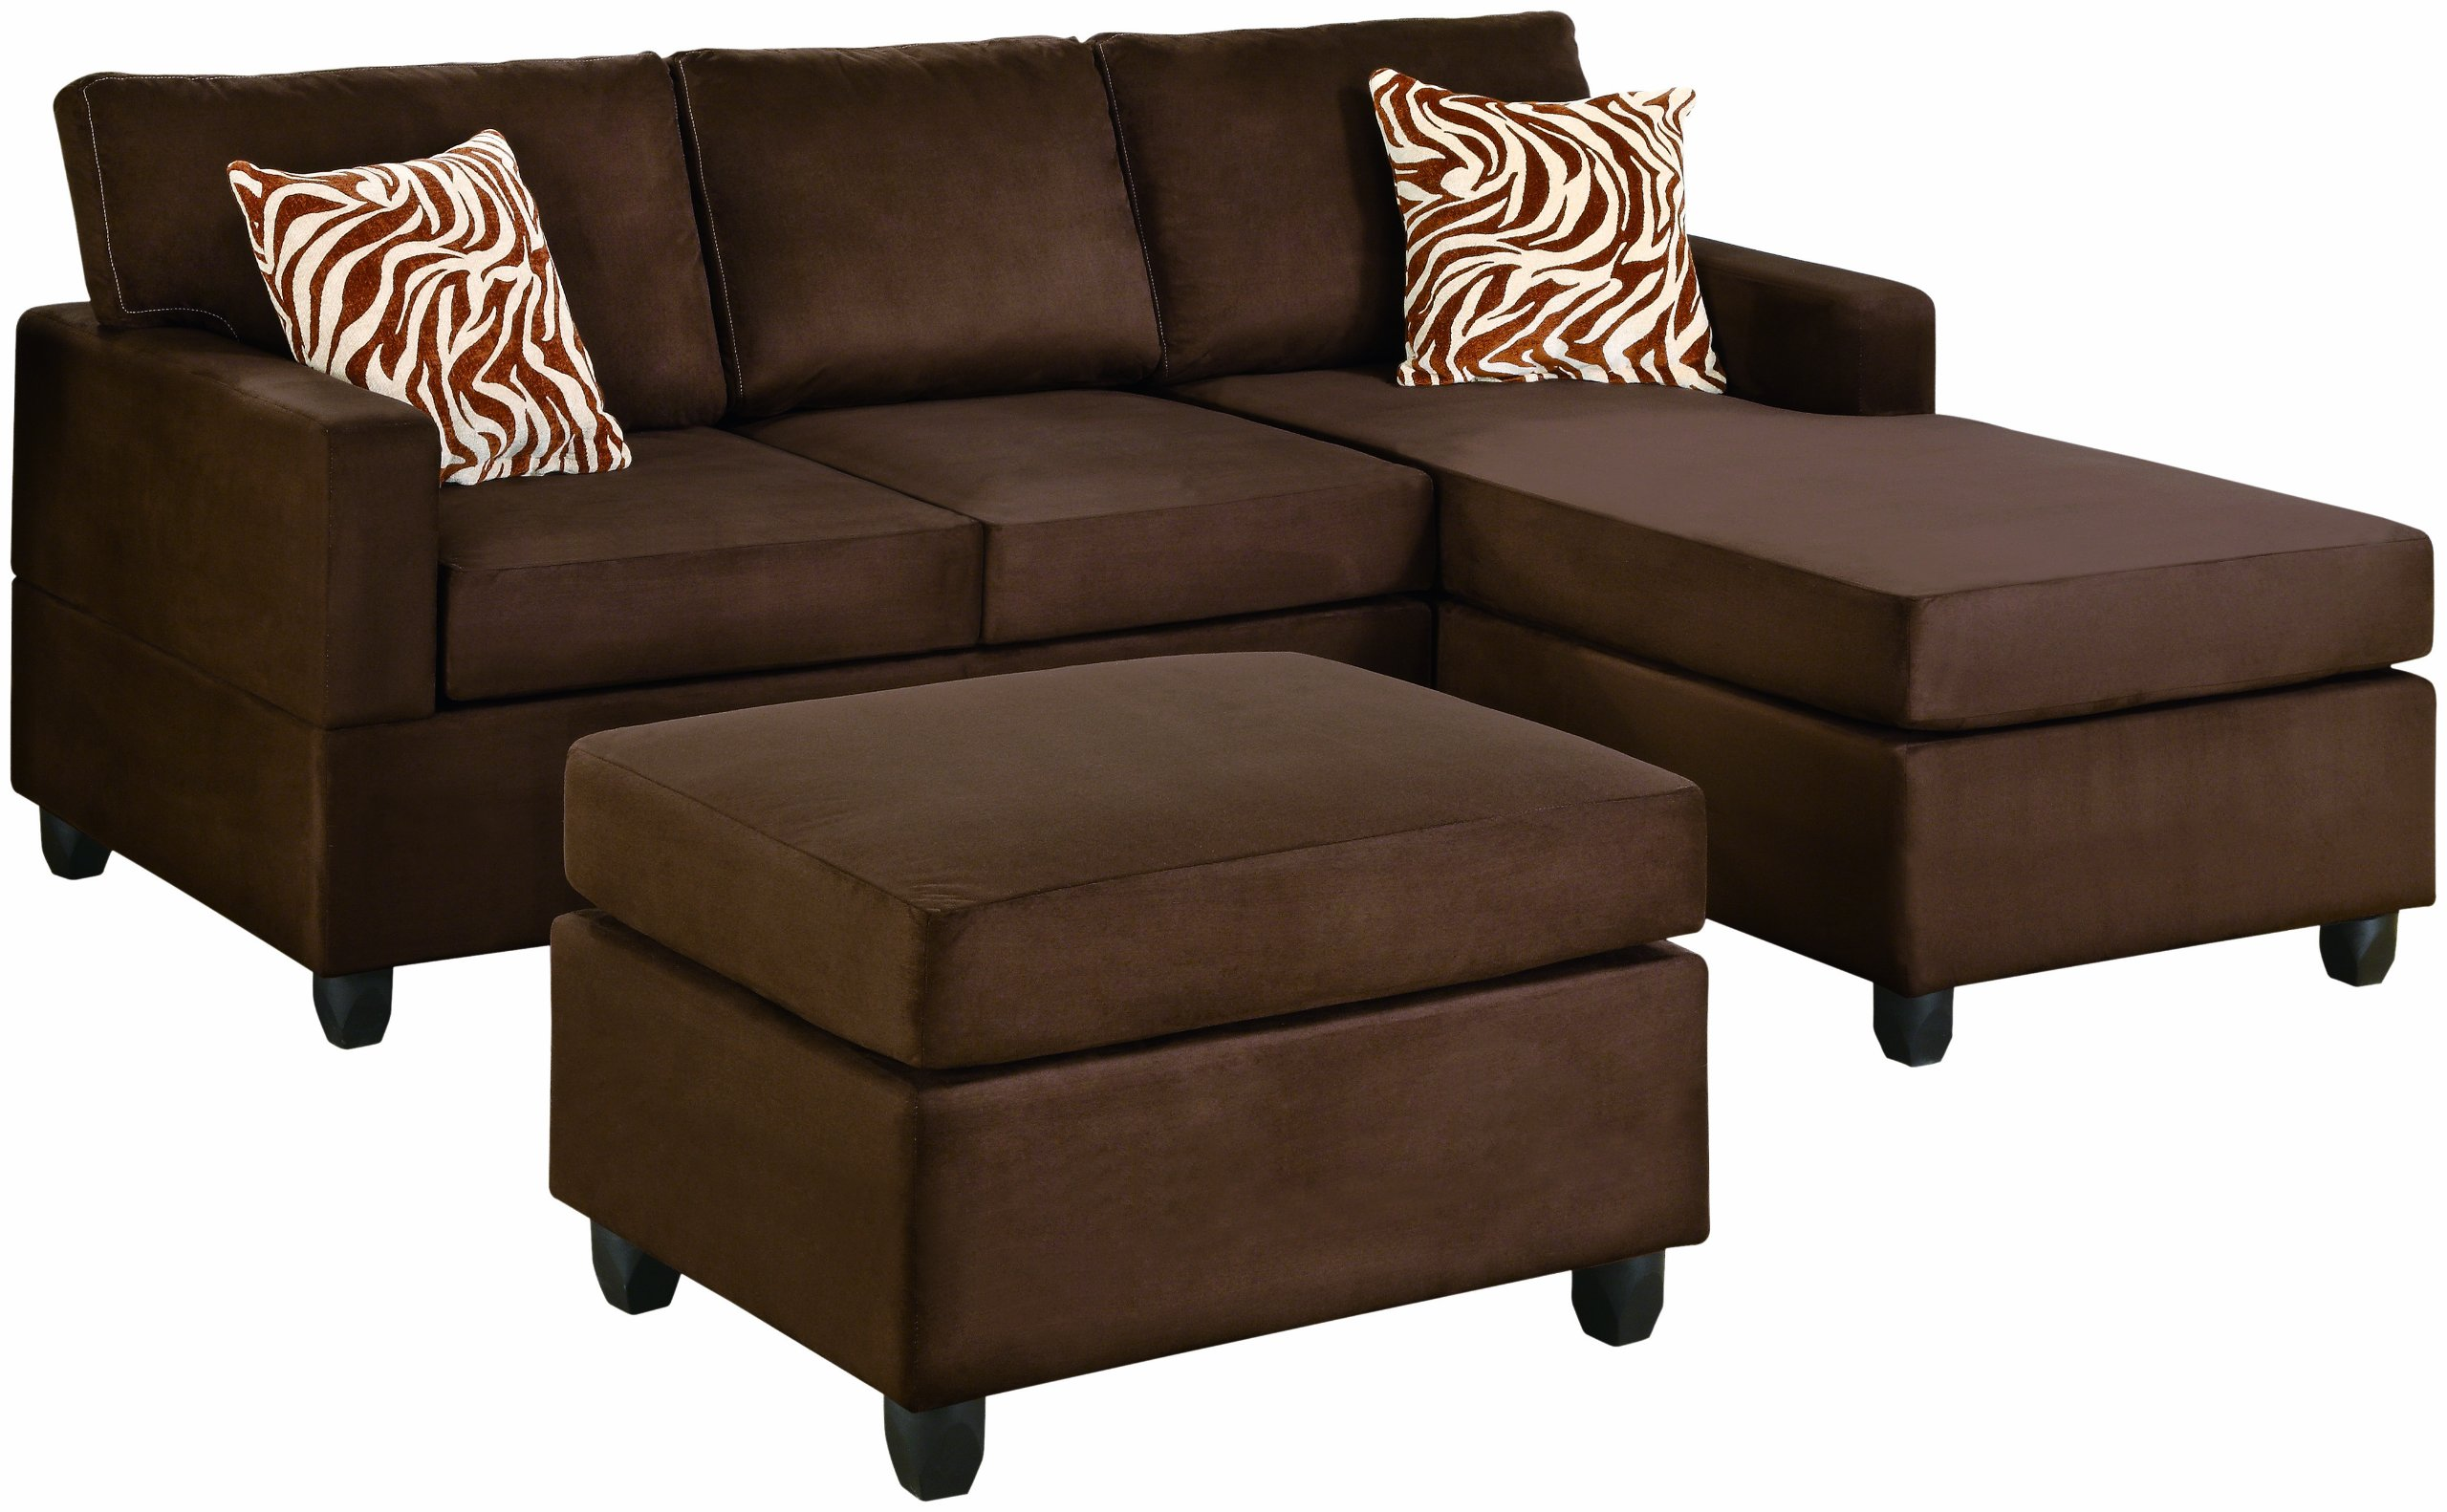 Small sectional sofa with chaise - Small couch with chaise ...